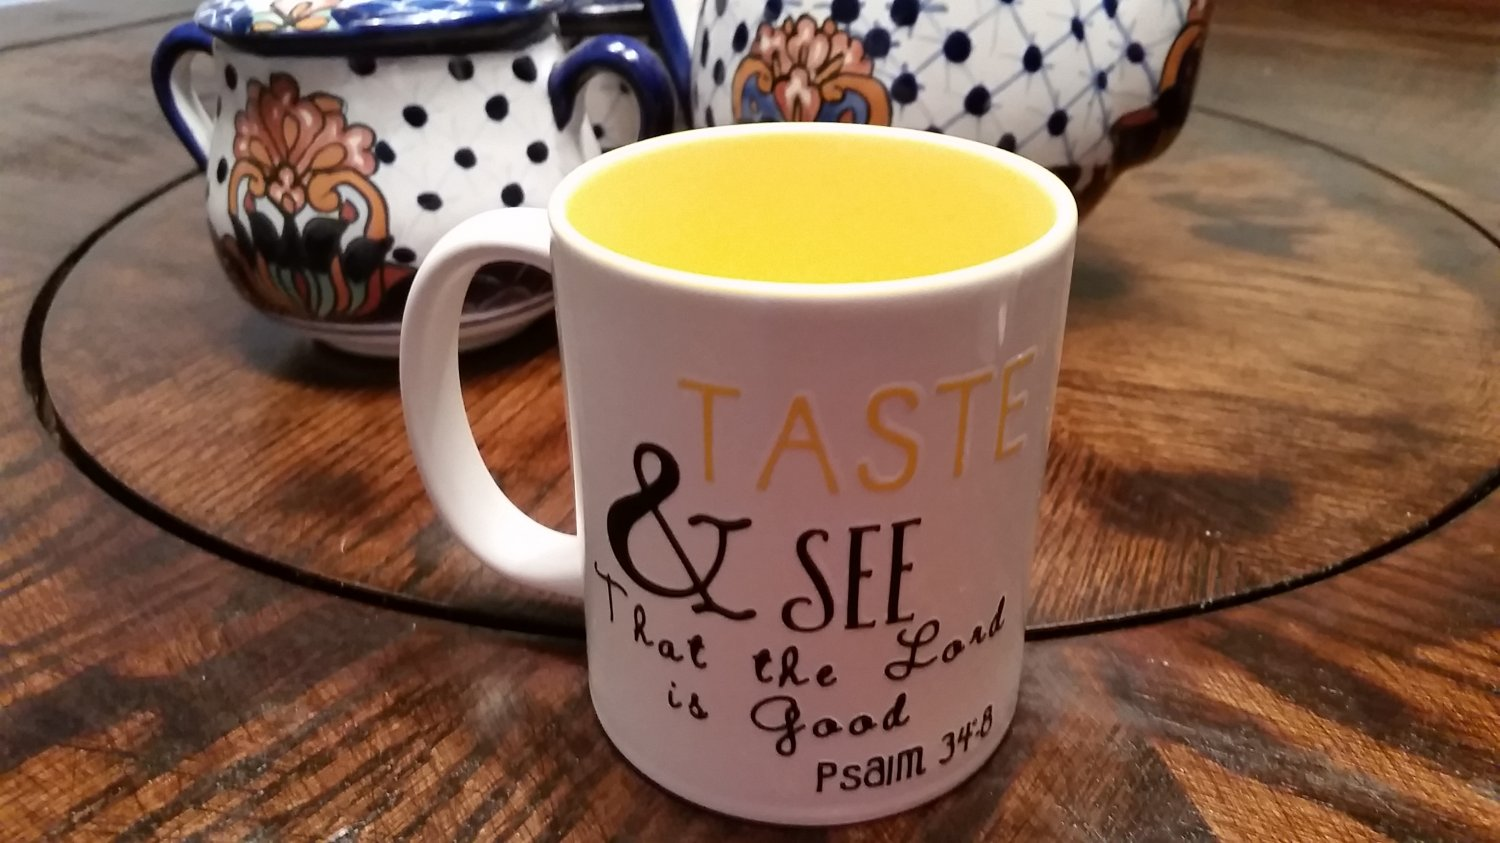 Taste and see that the lord is good/Mug/Coffee/Tea/Gift Idea